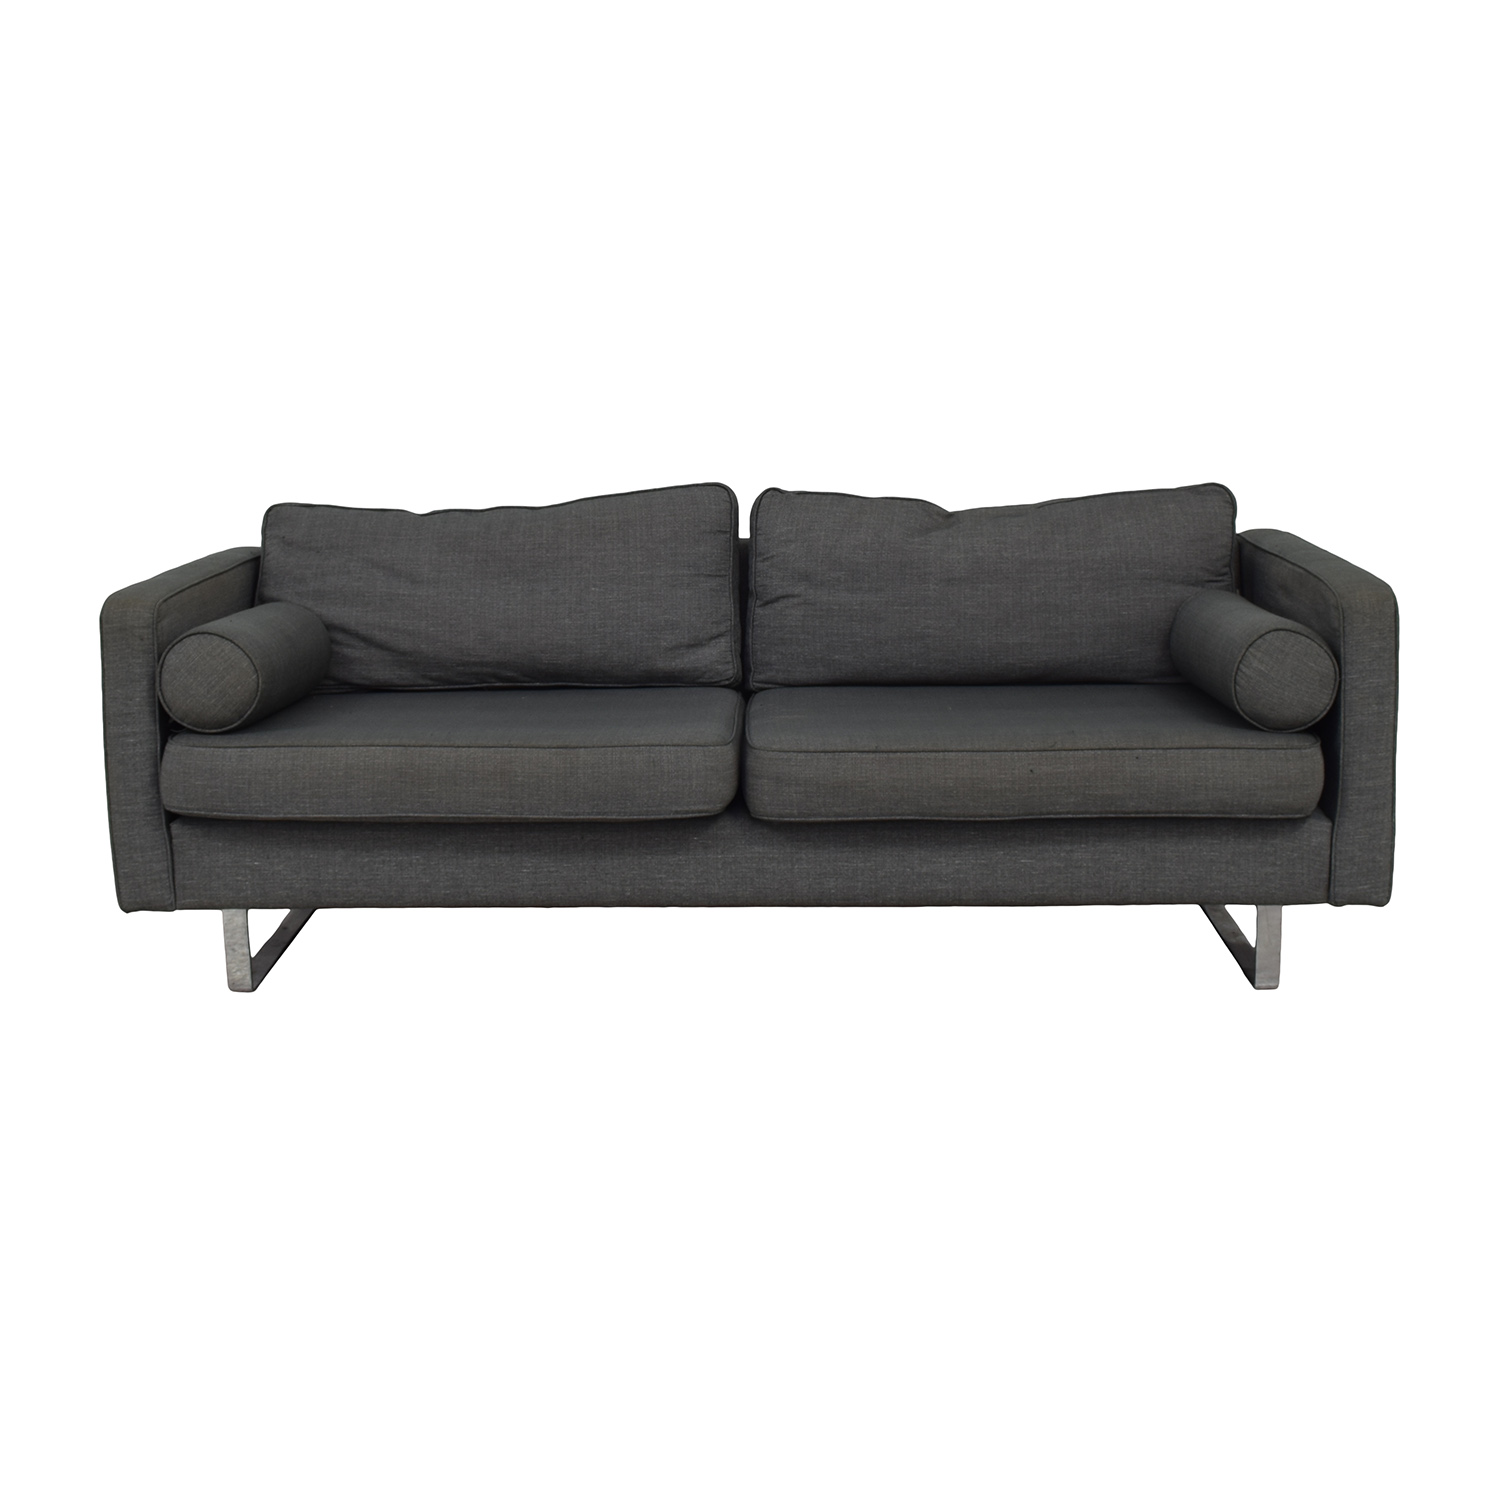 Conrans Conrans Grey Two-Cushion Sofa Sofas